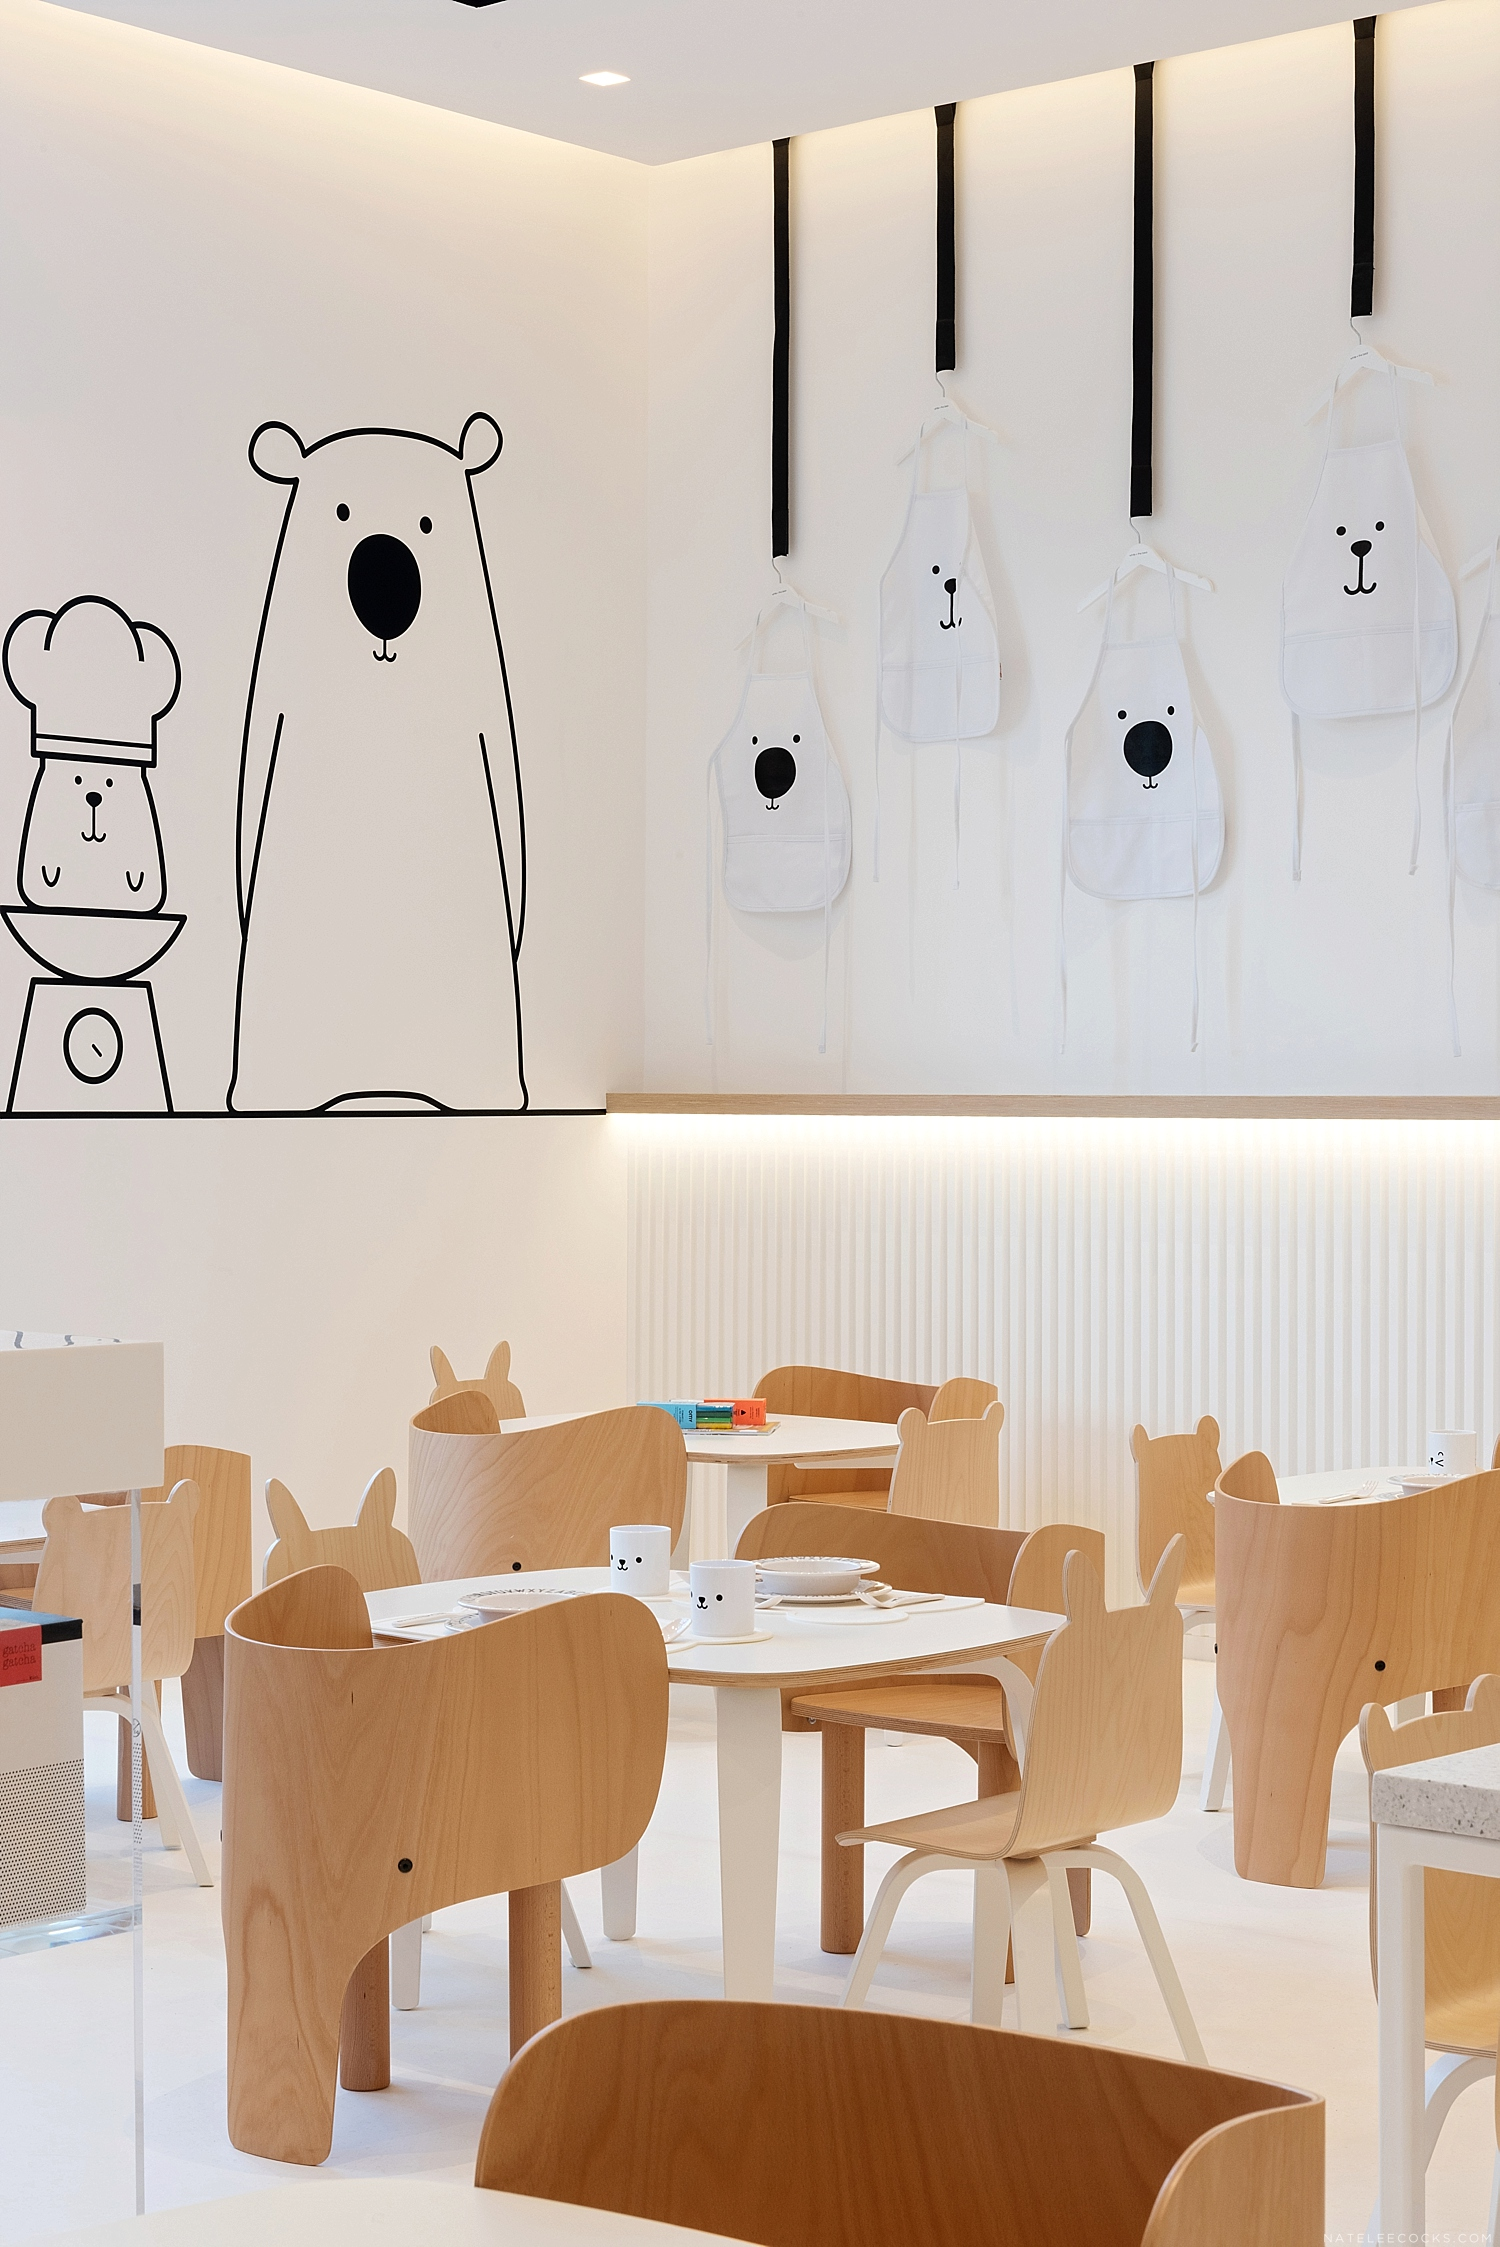 WHITE AND THE BEAR WORLD'S FIRST CHILDRENS RESTAURANT